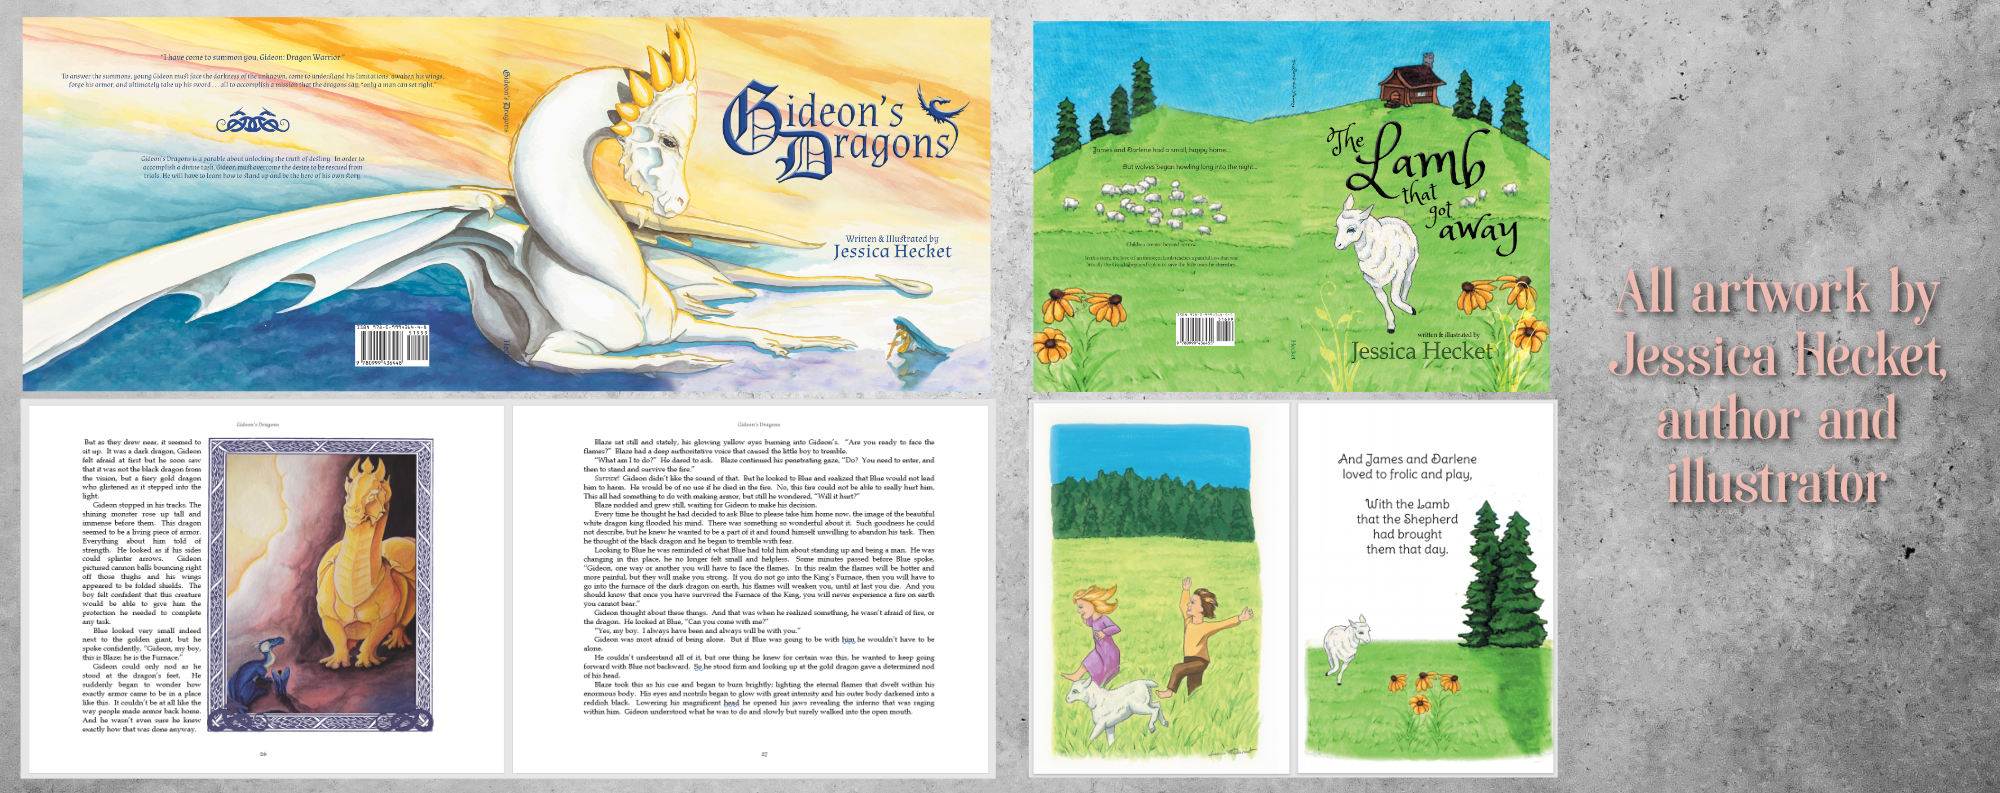 Example image of books Gideon's Dragons and The Lamb that Got Away by Jessica Hecket